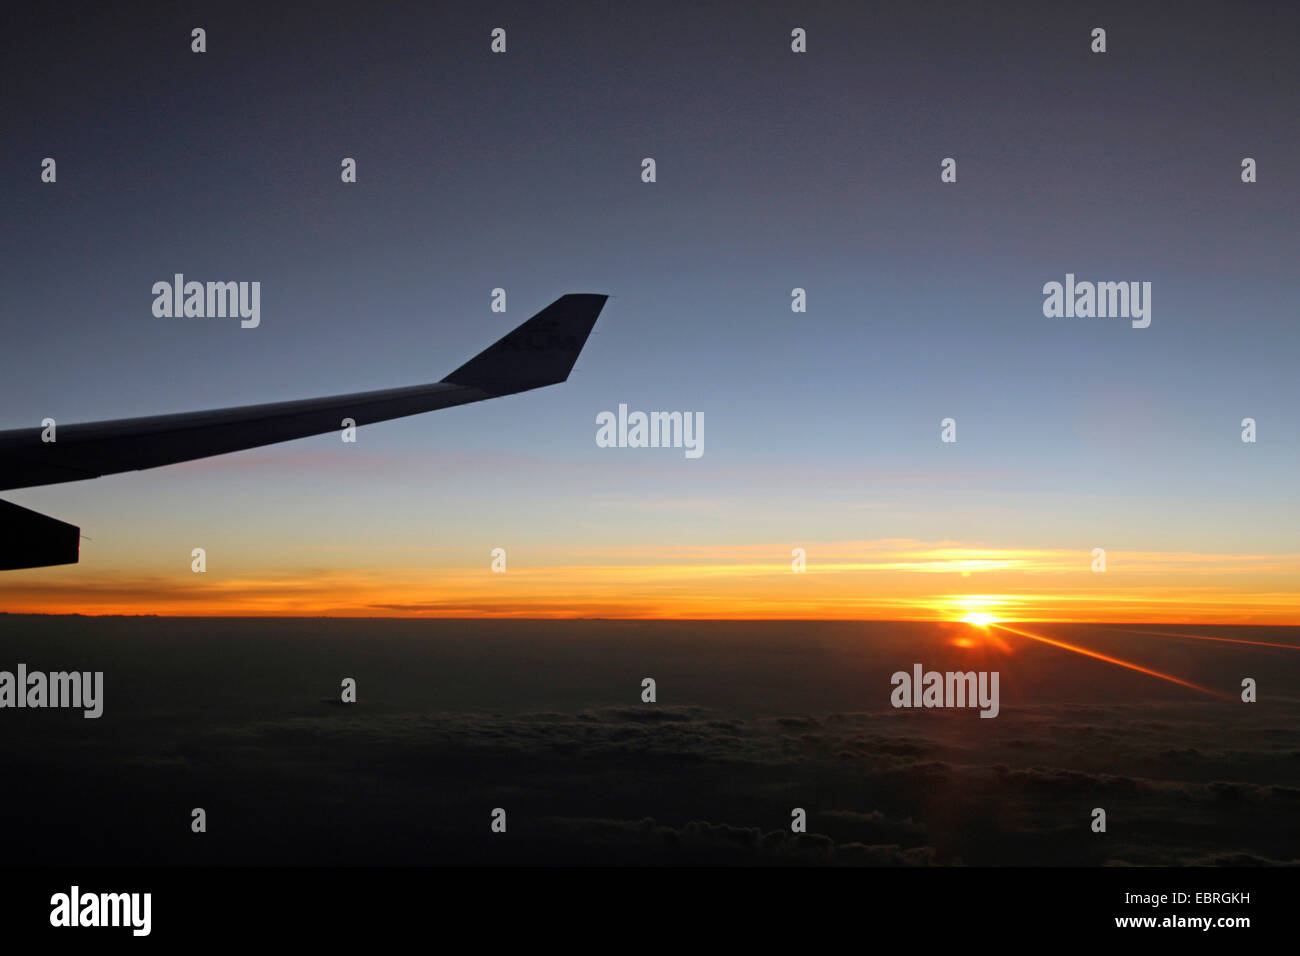 air foil in sunset - Stock Image